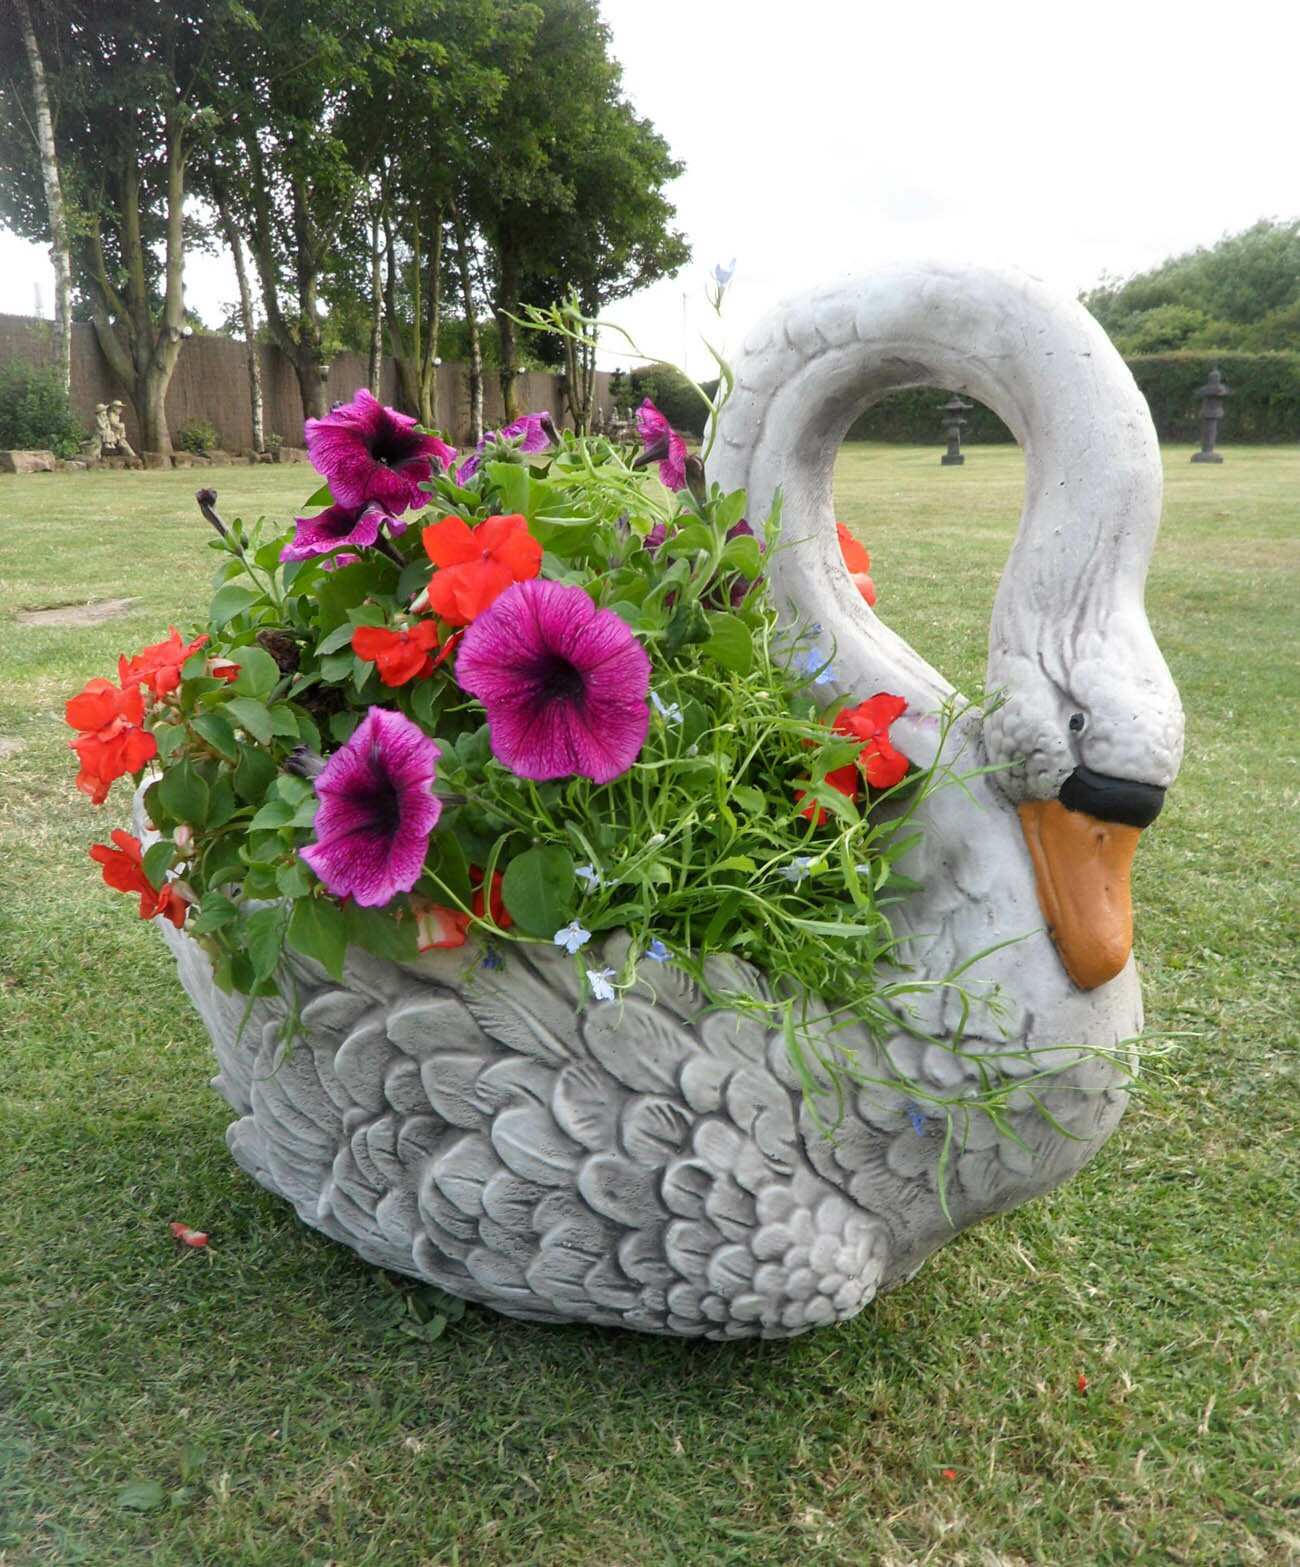 Decorative garden ornaments - Garden Ornaments 6